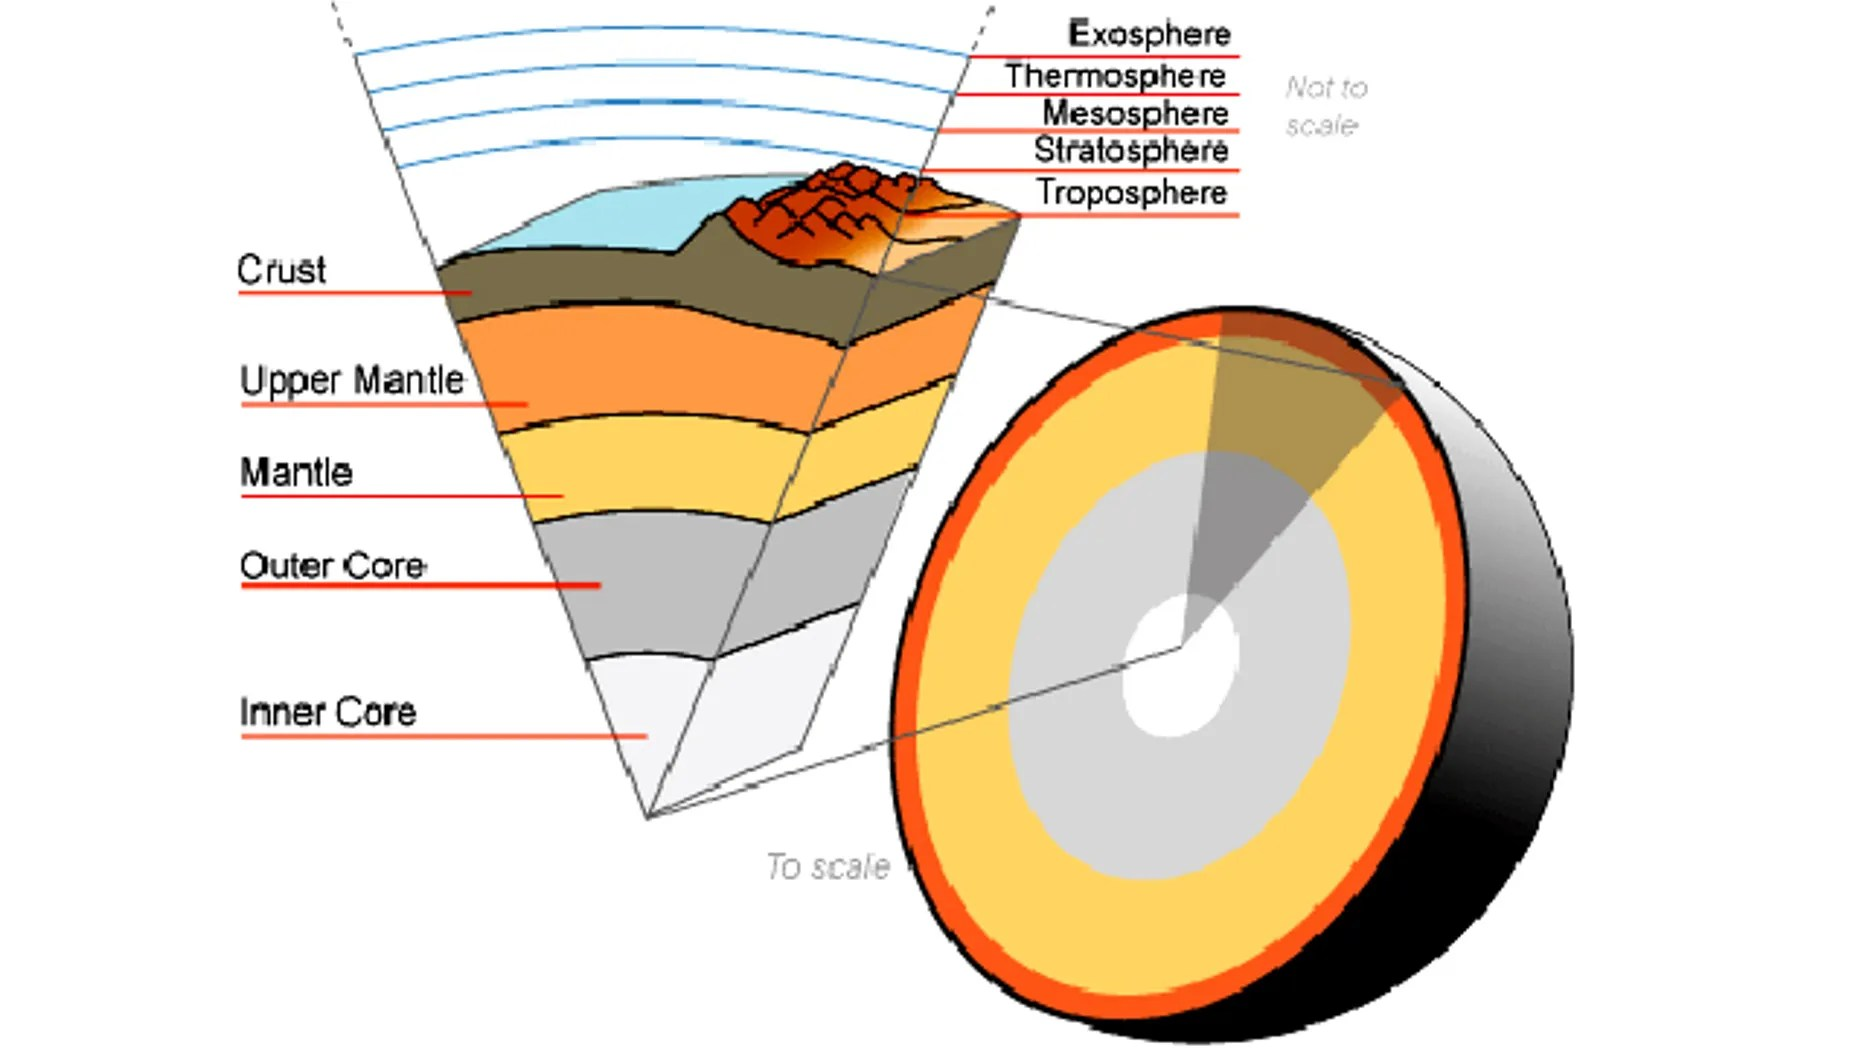 medium resolution of a cutaway illustration showing the earth s atmosphere and various inner layers